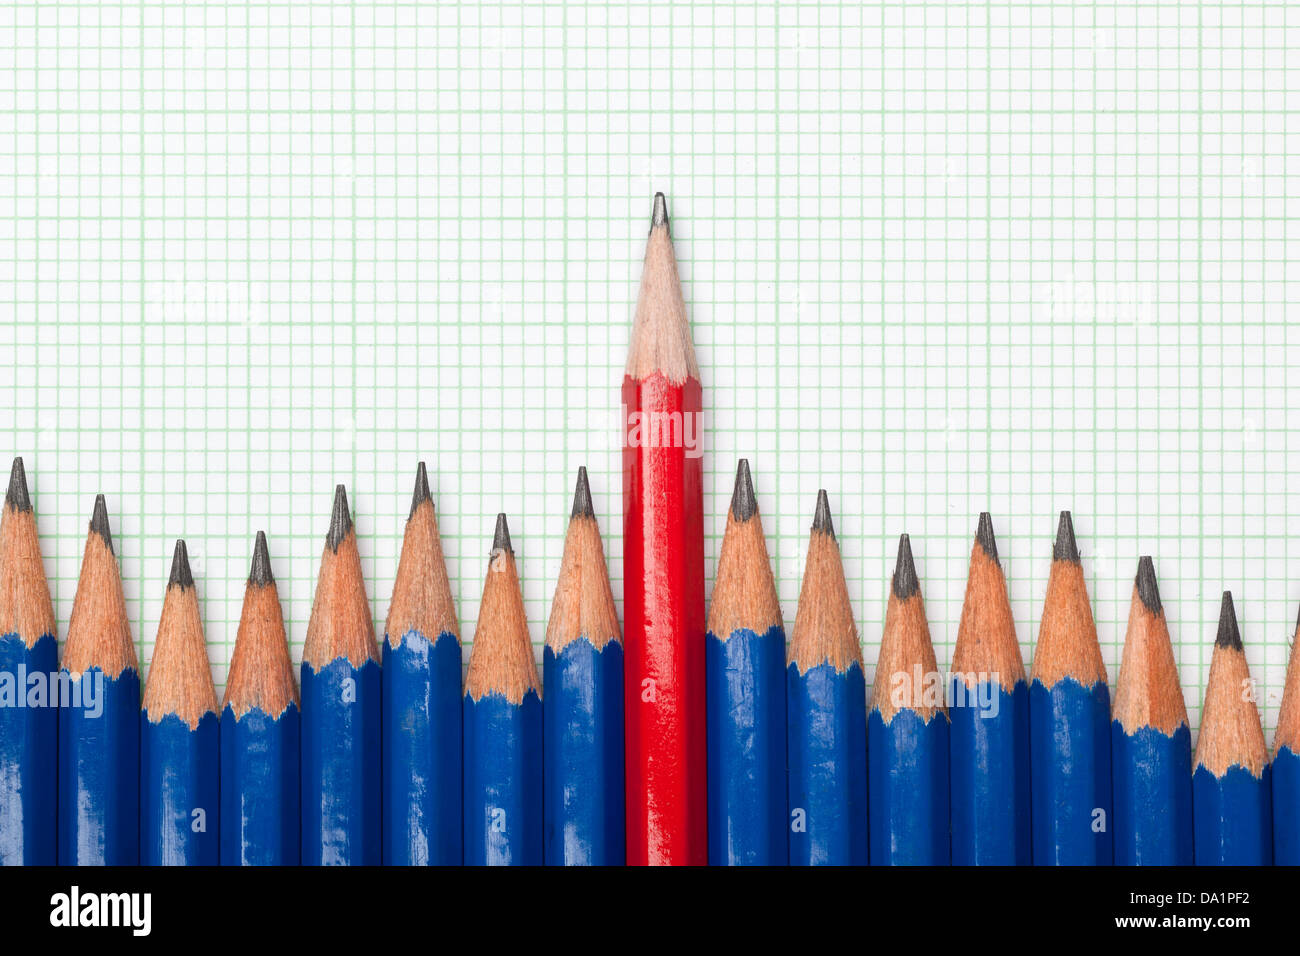 Red pencil standing out from a row of blue pencils on a piece of graph paper - Stock Image